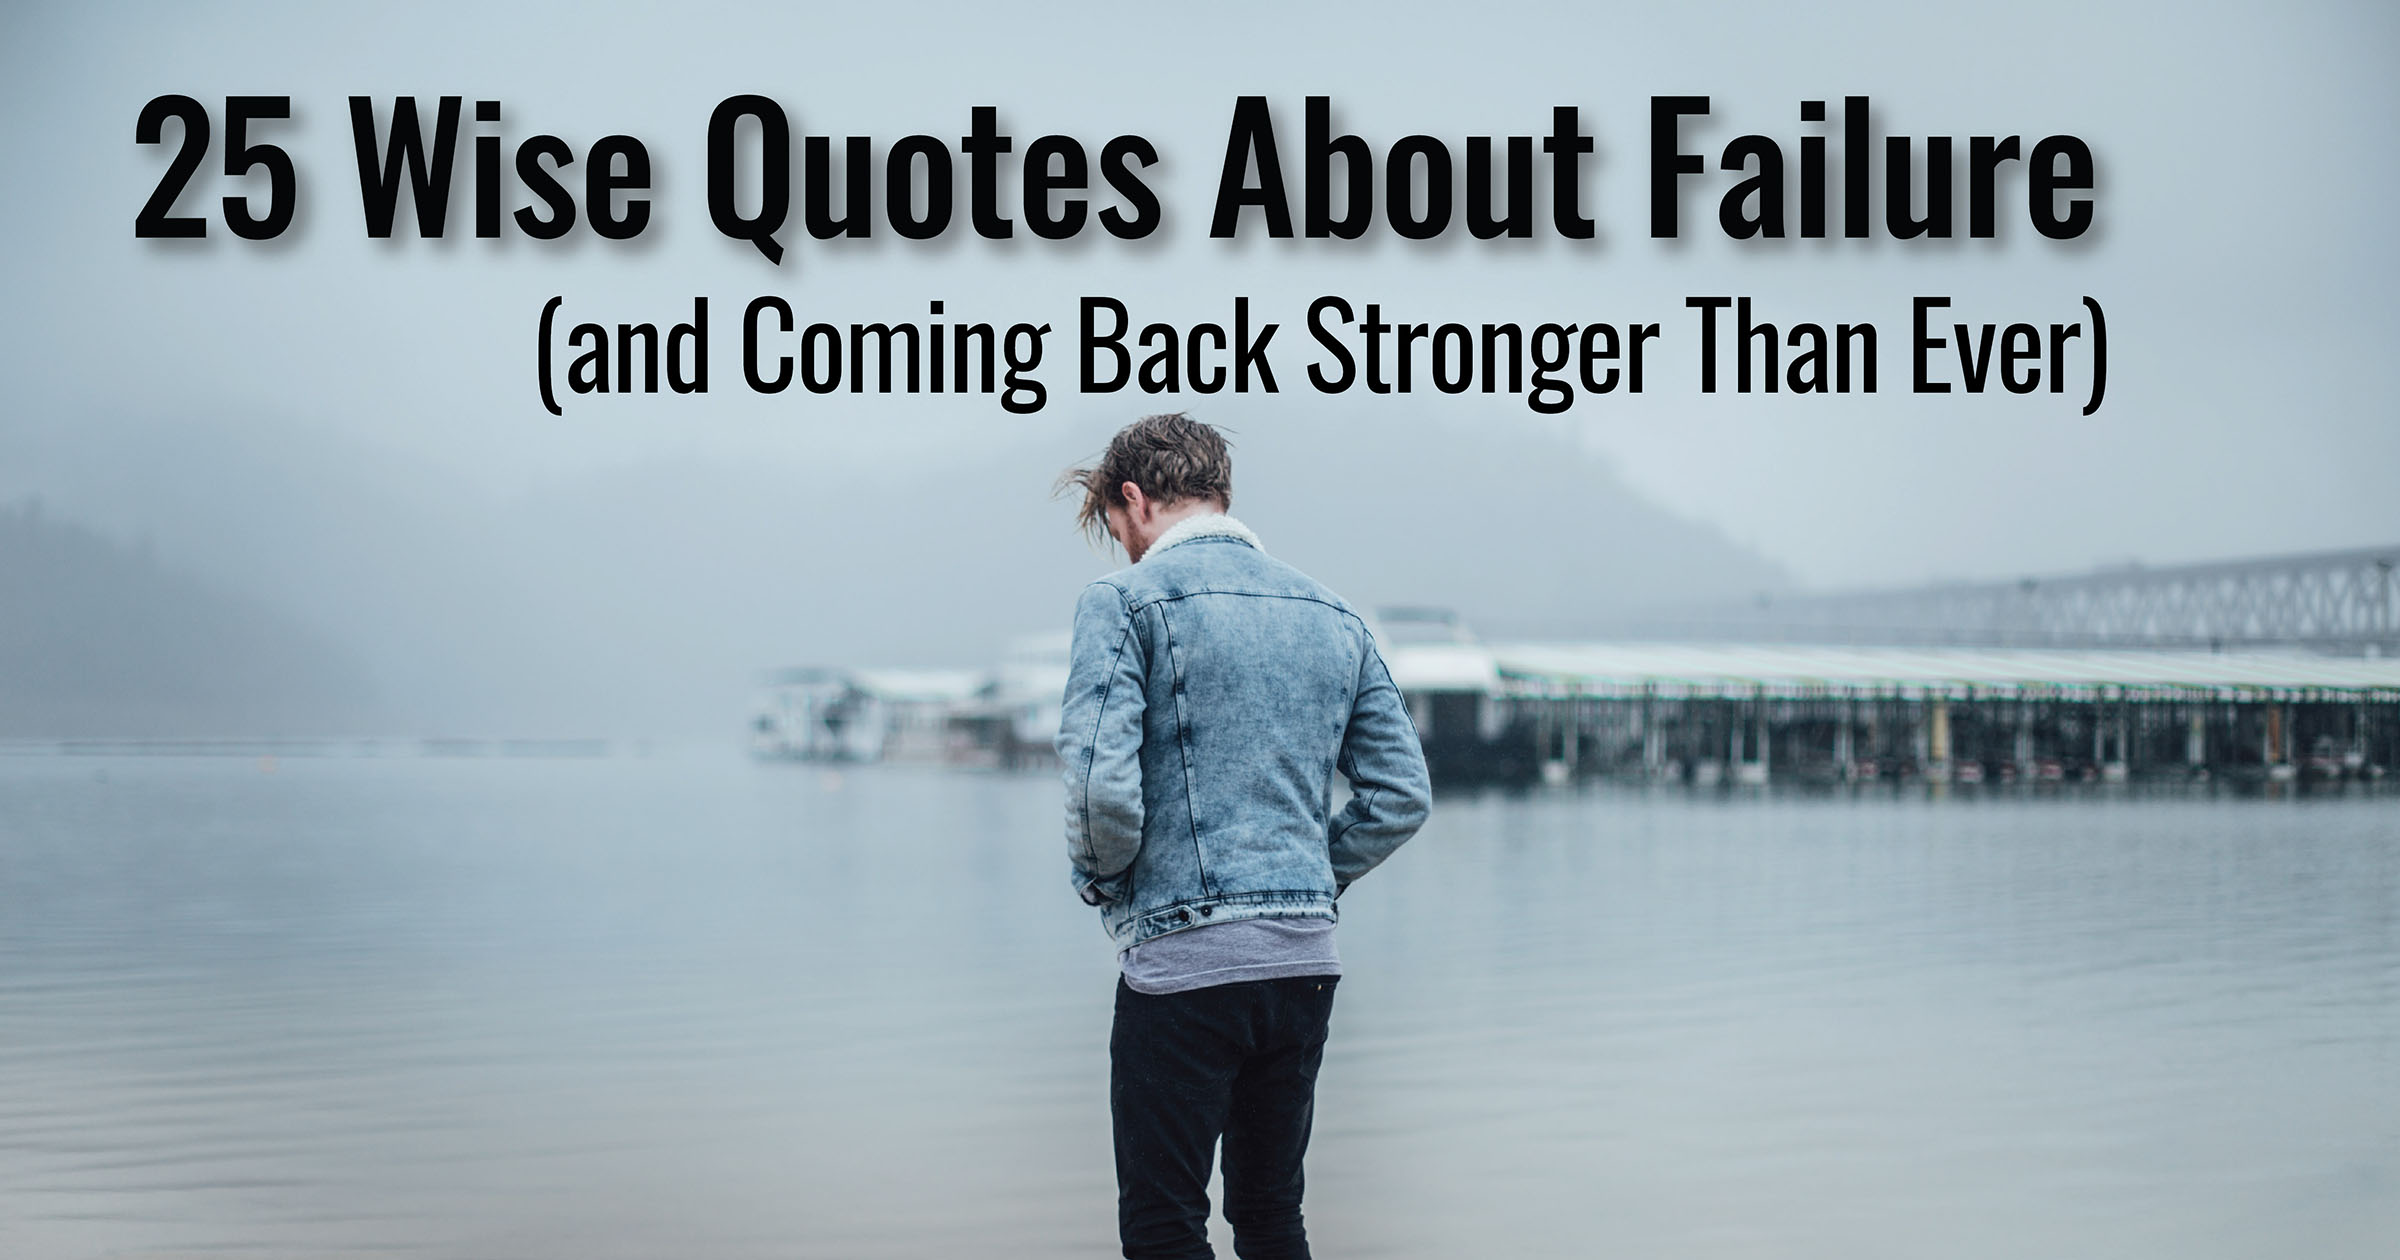 25 Wise Quotes About Failure (and Coming Back Stronger Than Ever)